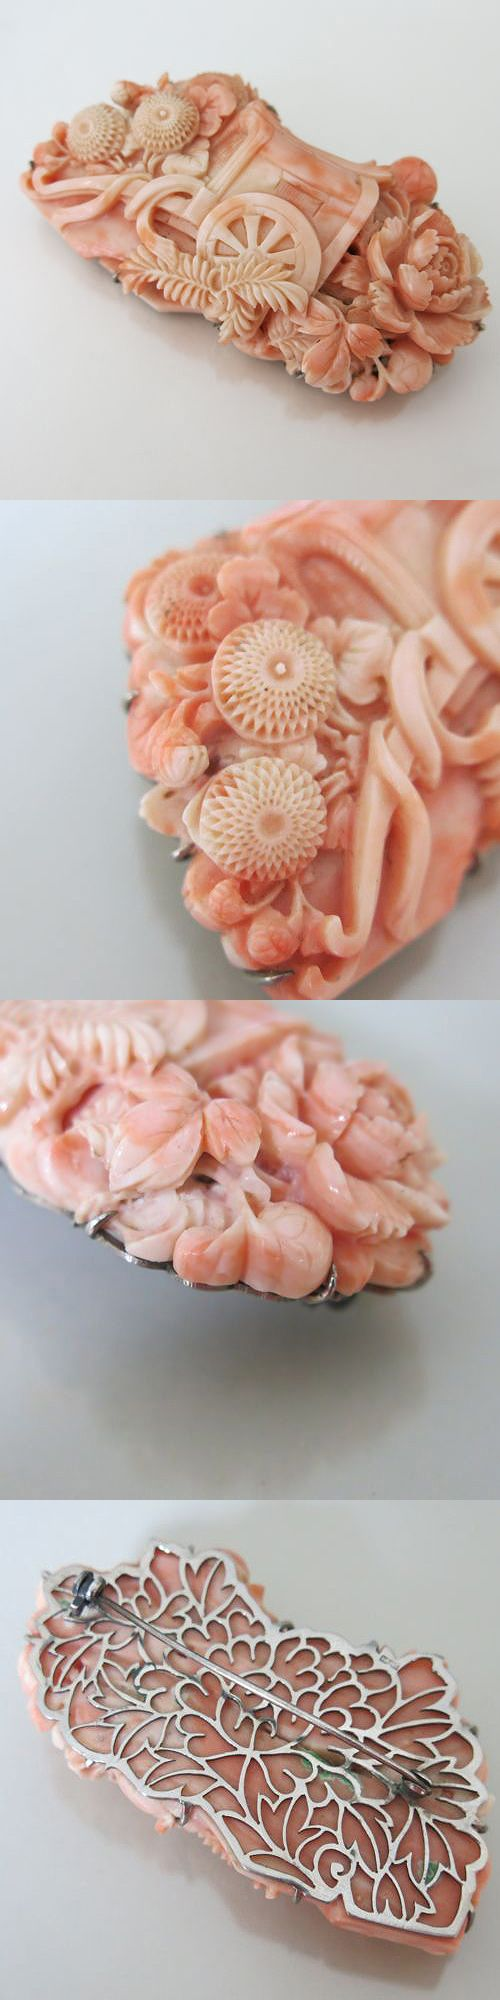 "Japanese White Gold Carved Coral Brooch. The Coral was carved during the Meiji period for an obidome and the backing of the brooch was added during the 1940's - 50's. The carving is very 2-dimensional with a lot of depth to it and measures just under 1/2"" thick at its thickest point. Length 2 5/8"", Width 1 3/8"", Mark ""S.P.M."", Weight 46 grams"